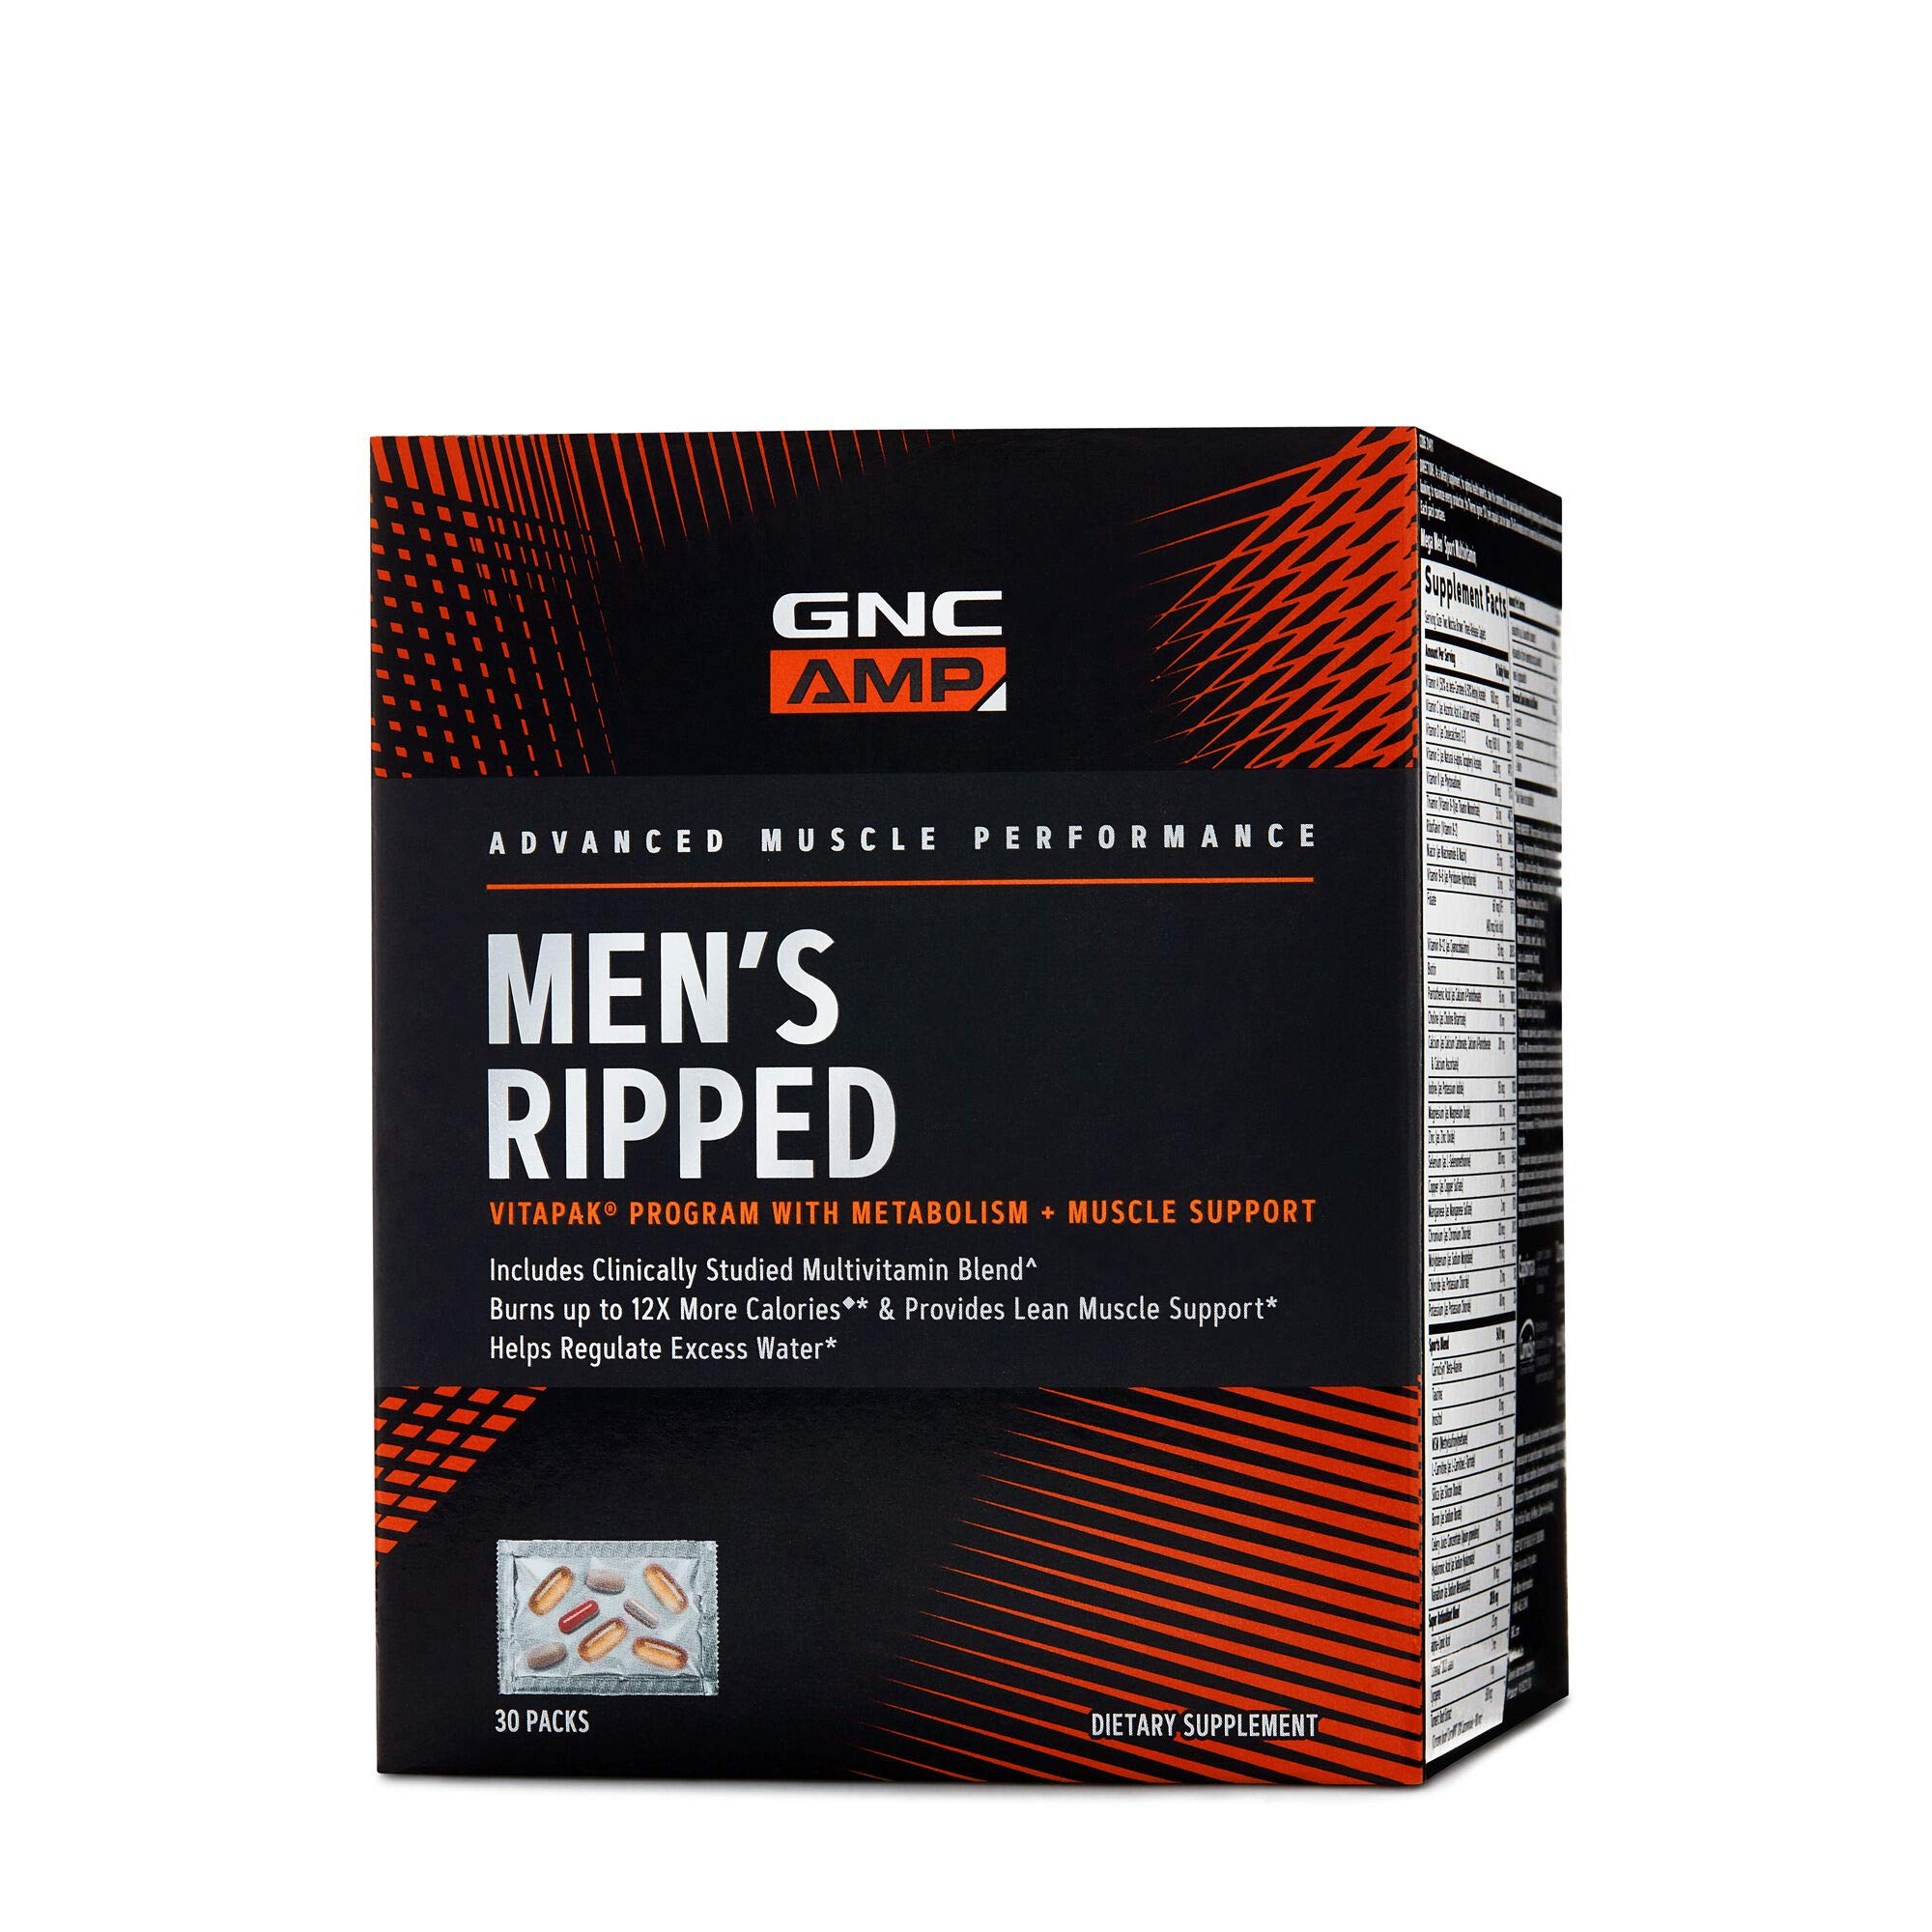 GNC AMP Mens Ripped Vitapak Program, 30 Packs, with Metabolism and Muscle Support by GNC